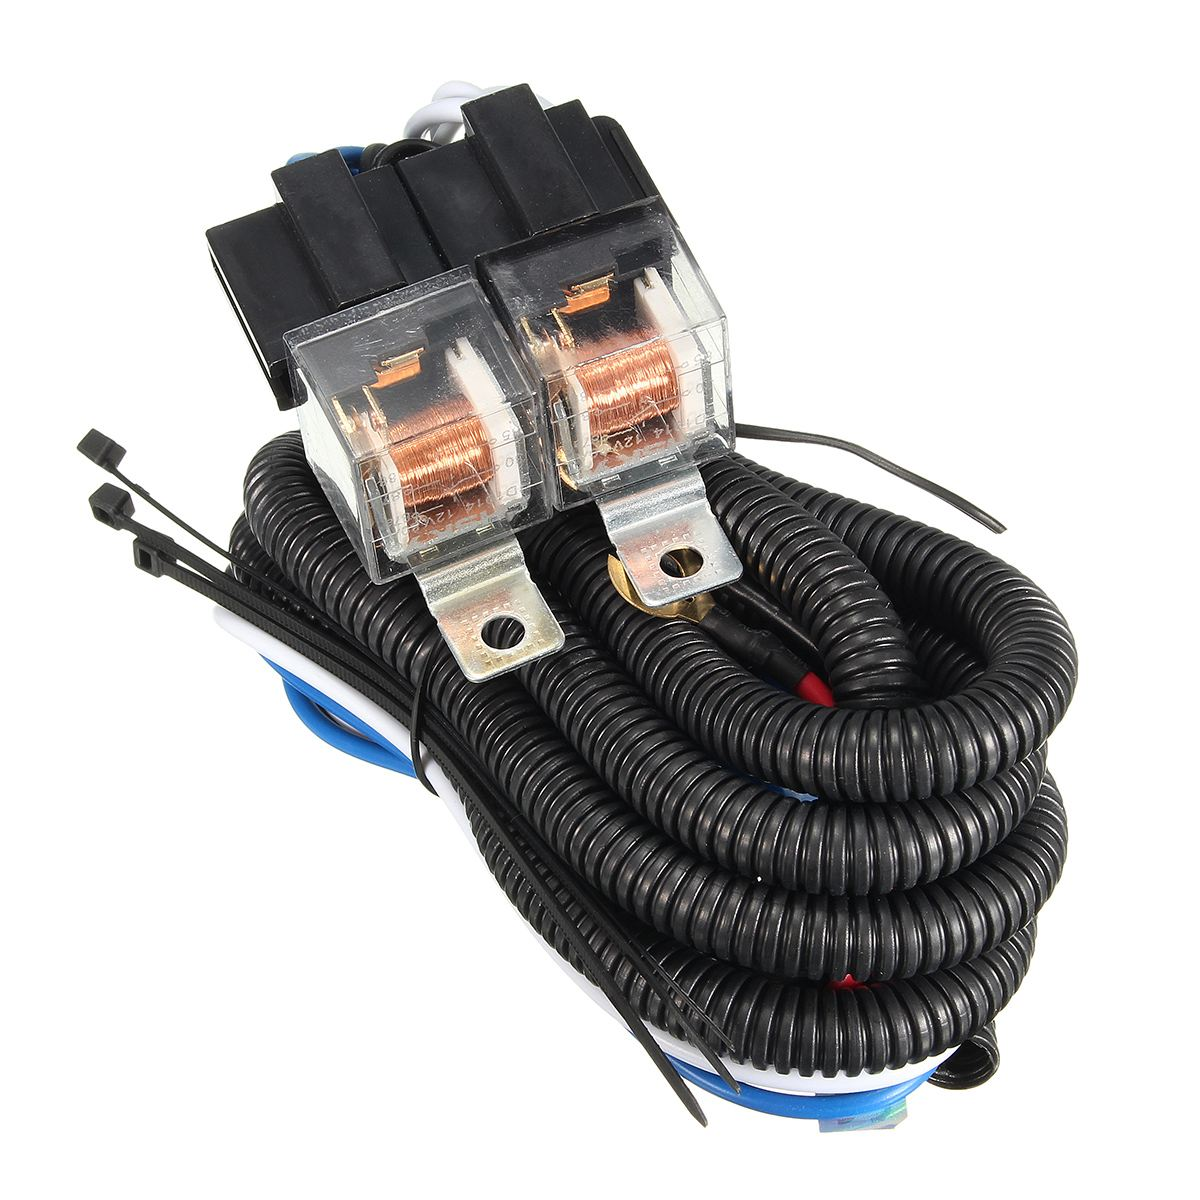 H4 Car Headlight Headlamp Bulb Ceramic Socket Plug Relay Wiring Harness Light Dc 12v Connector In Cables Adapters Sockets From